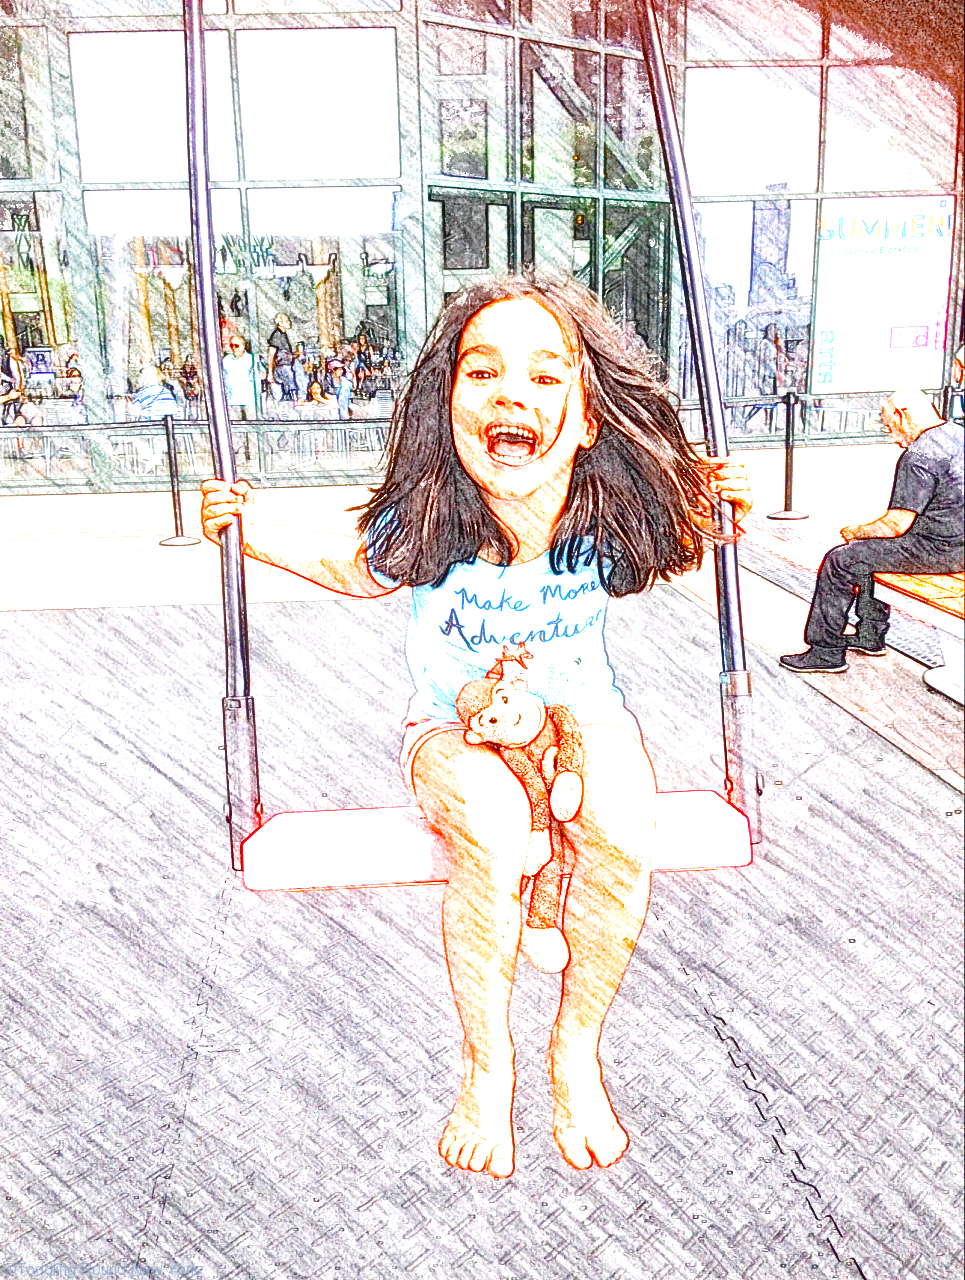 Musical swings in Battery Park City – last chance